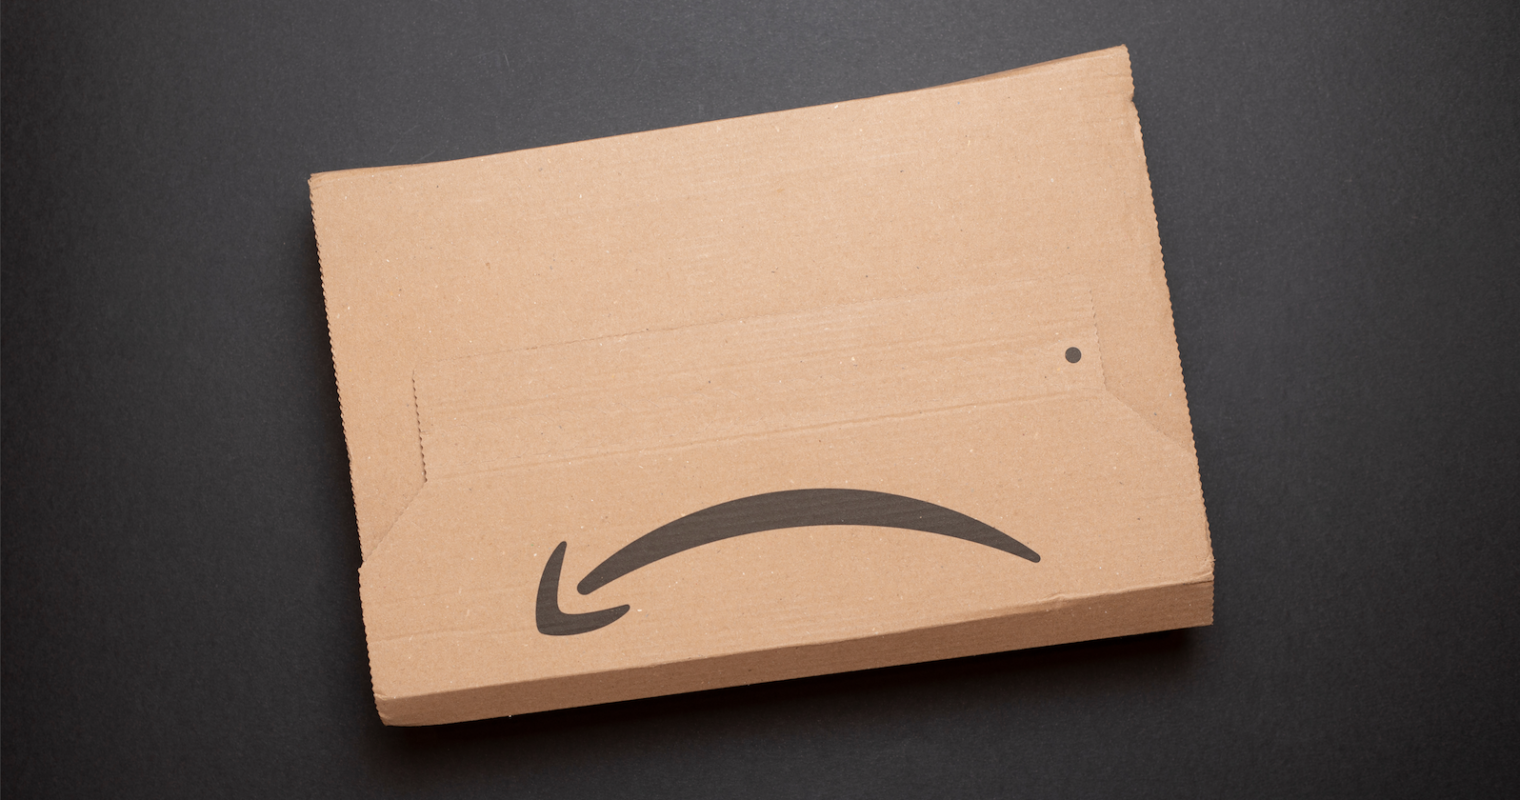 Amazon Removes Ability for FBA Shipments to Non-Essential Goods